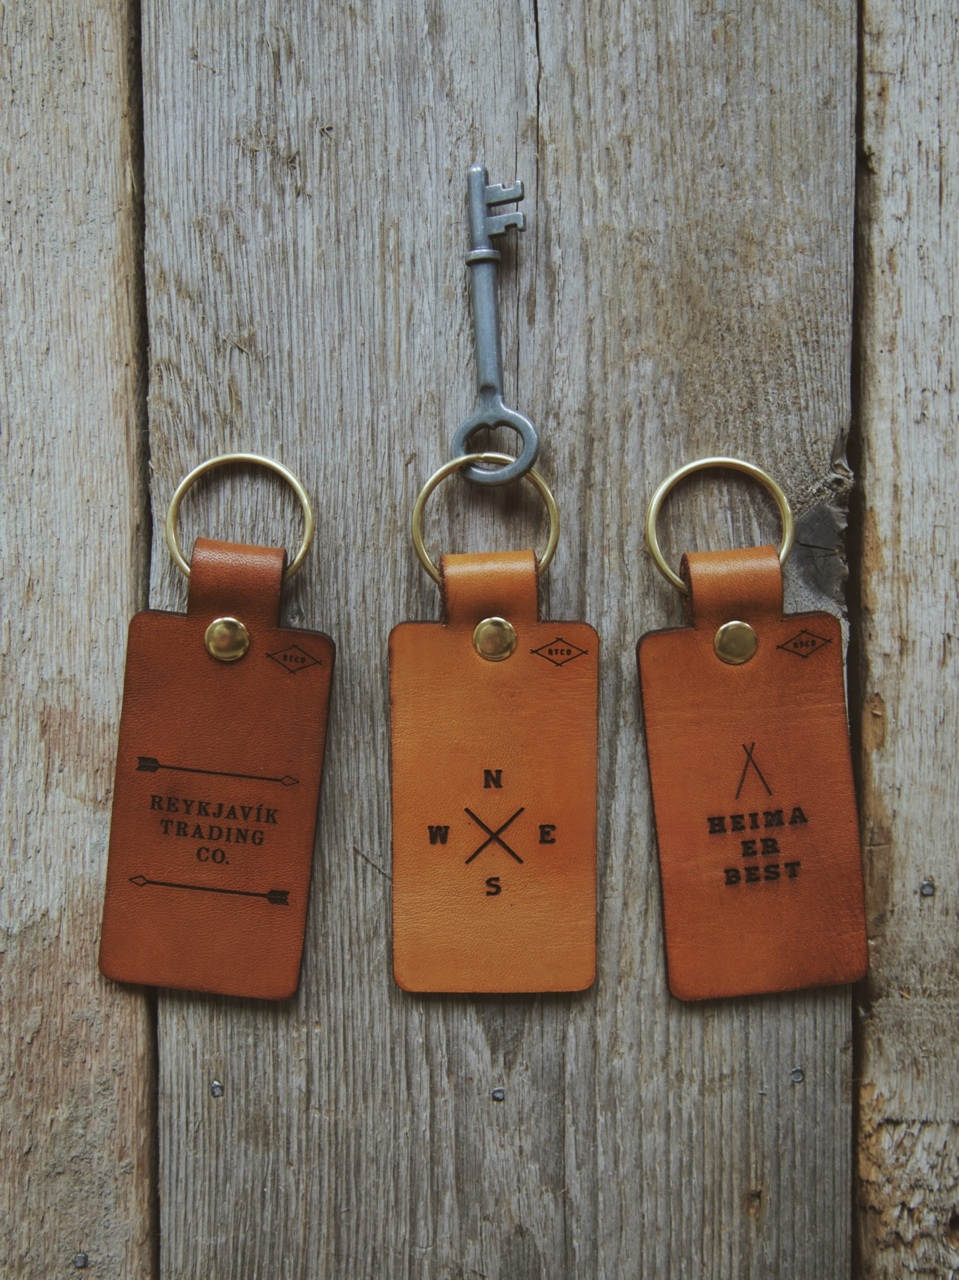 Introducing our Veggie Tanned Leather Keychains & Luggage Tags.  Each cut is hand stained & engraved to our liking. For travelers, adventurists, or just folks who like nice leather goods- these are for you. Message us for private orders- quantities limited at the moment.